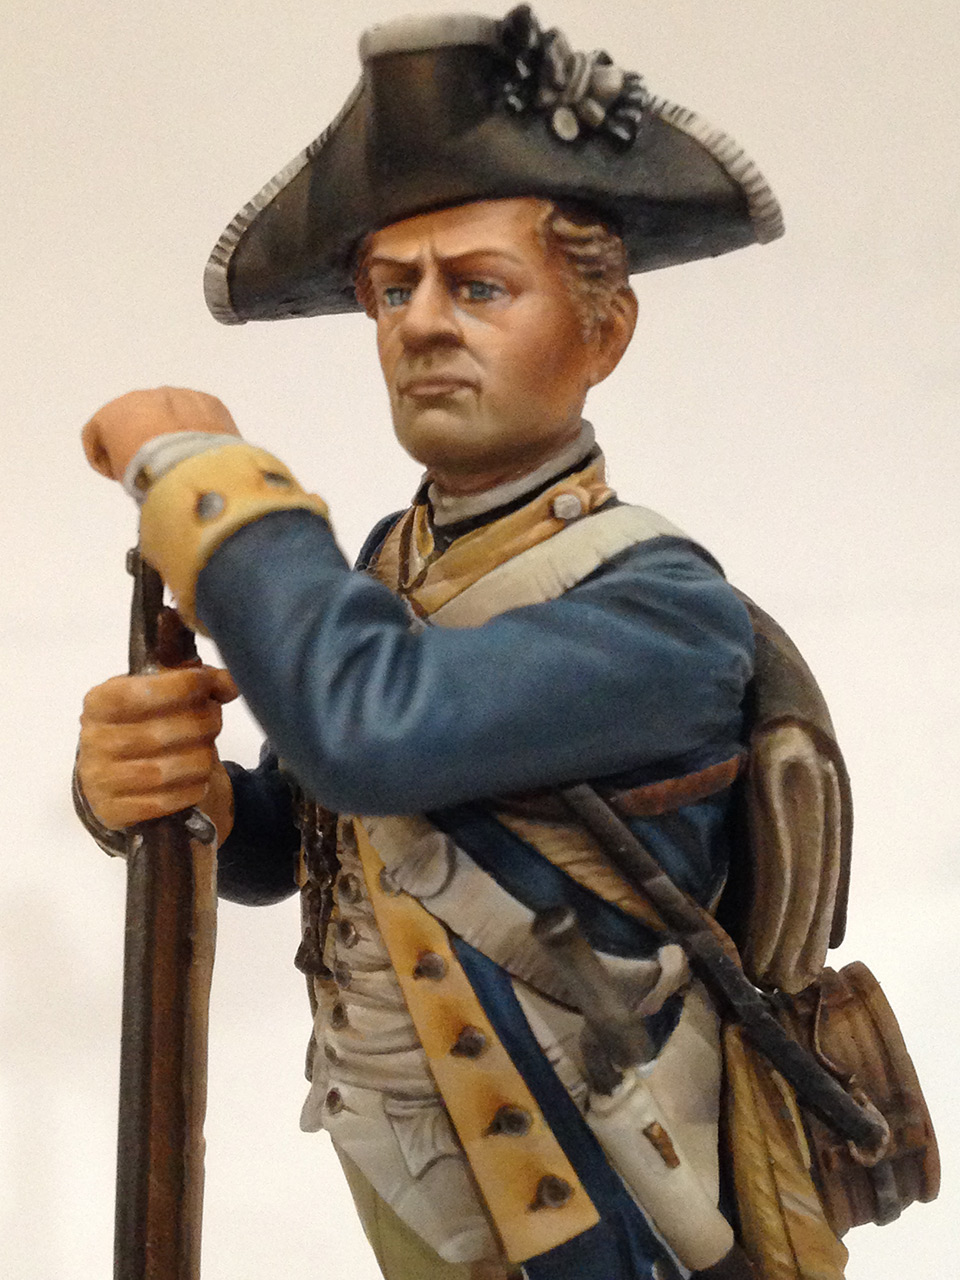 Figures: Private, 1st New York regt. of Continental Army, photo #10